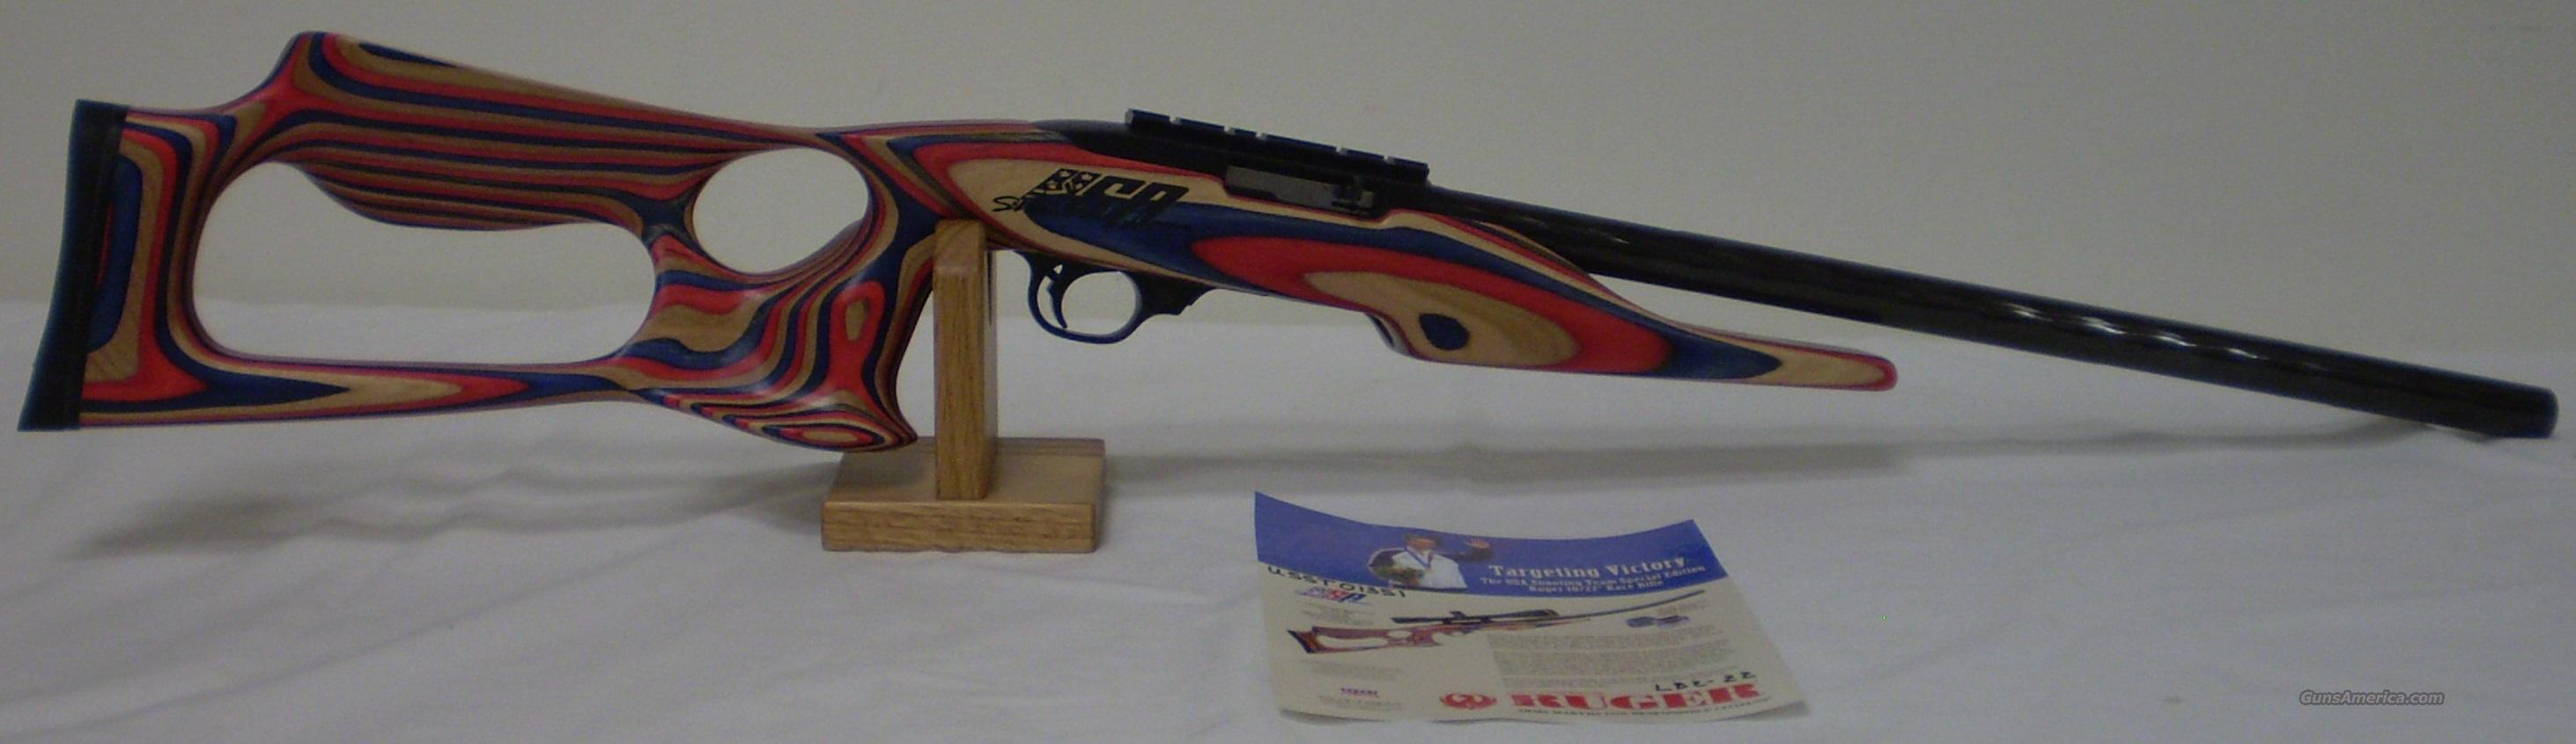 Ruger Race Rifle 2008 Olympic Talo Edition 10/22 (Limited Edition Talo)  Guns > Rifles > Ruger Rifles > 10-22